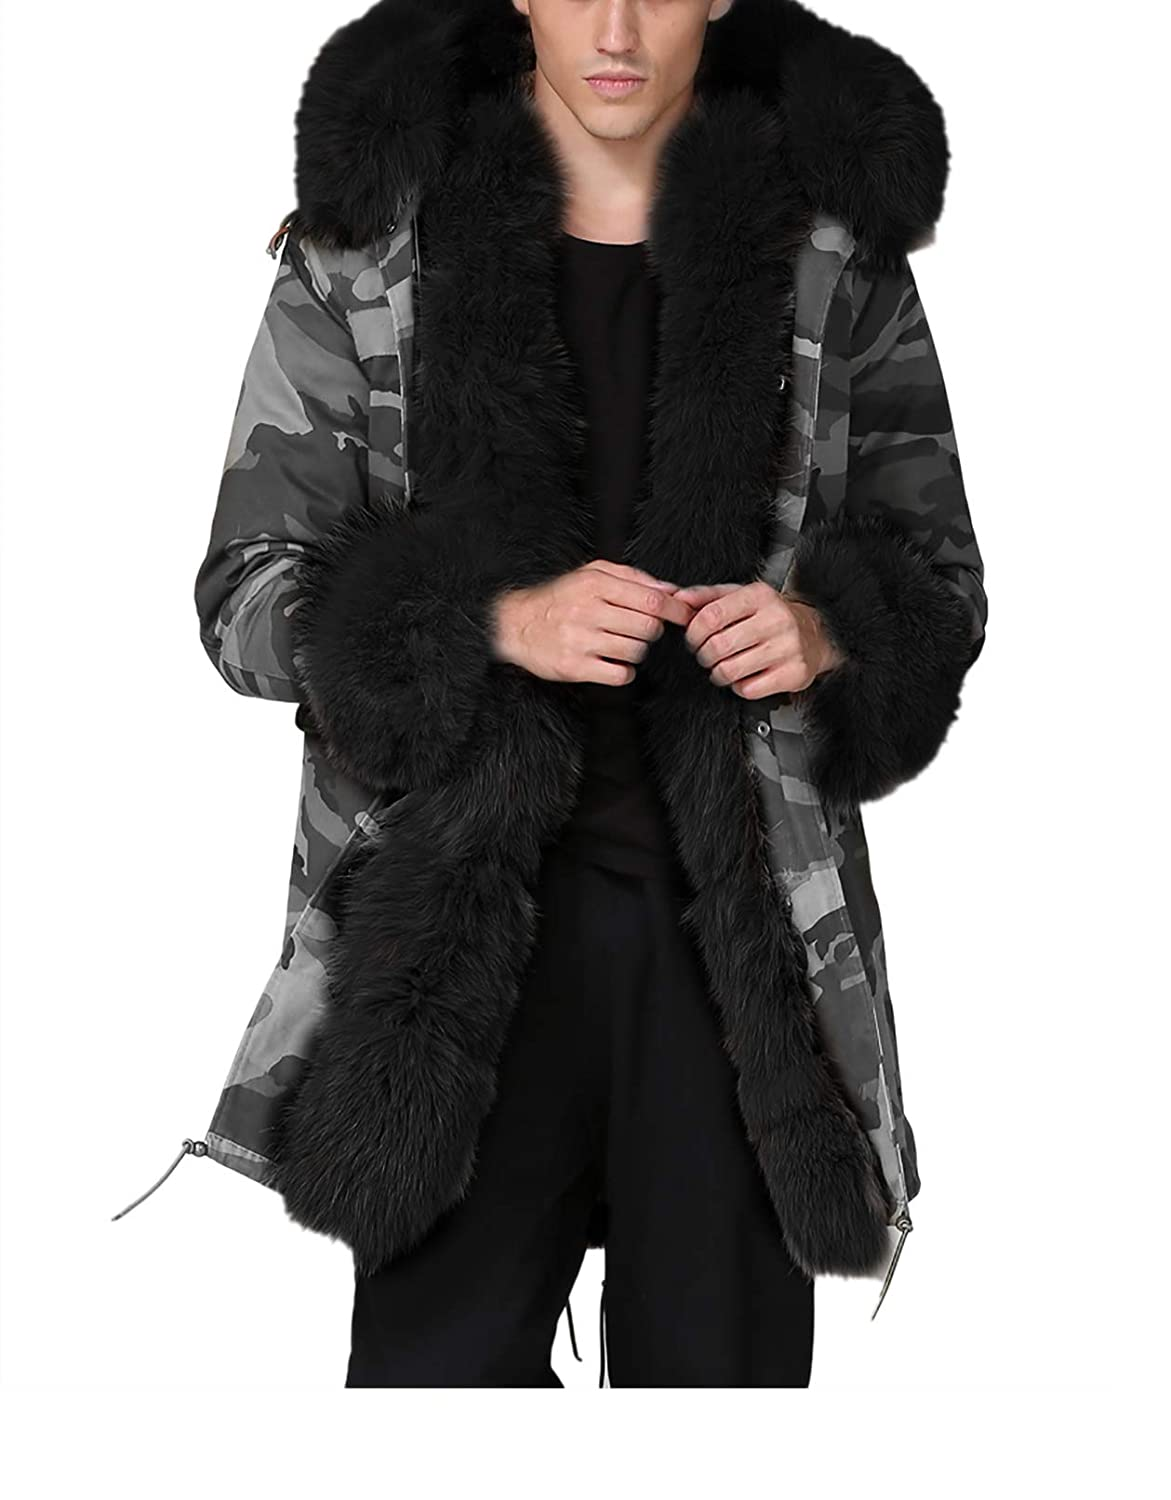 202b1172ec534 Aox Mens Casual Faux Fur Hood Warm Thicken Lined Winter Coat Plus Size  Lightweight Outdoor Jacket Parka  Amazon.co.uk  Clothing